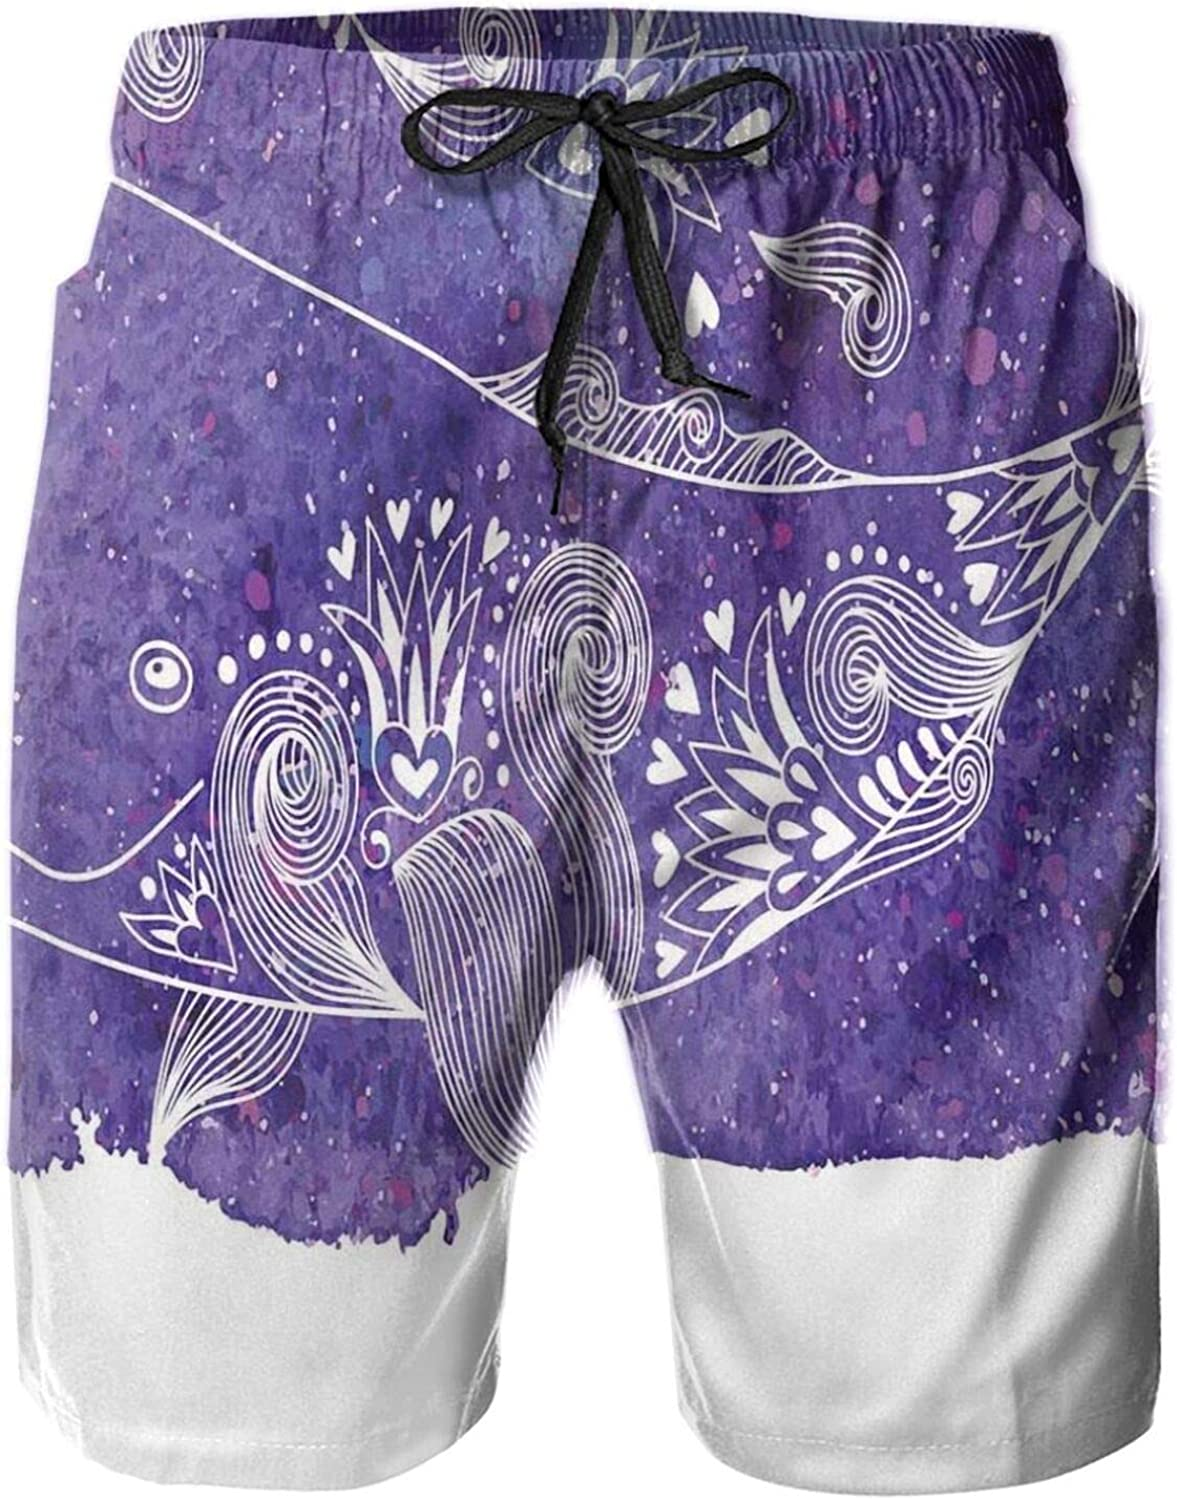 Watercolor Whale with Floral Flower Hearts Details Marine Celebration Artwork Print Drawstring Waist Beach Shorts for Men Swim Trucks Board Shorts with Mesh Lining,L